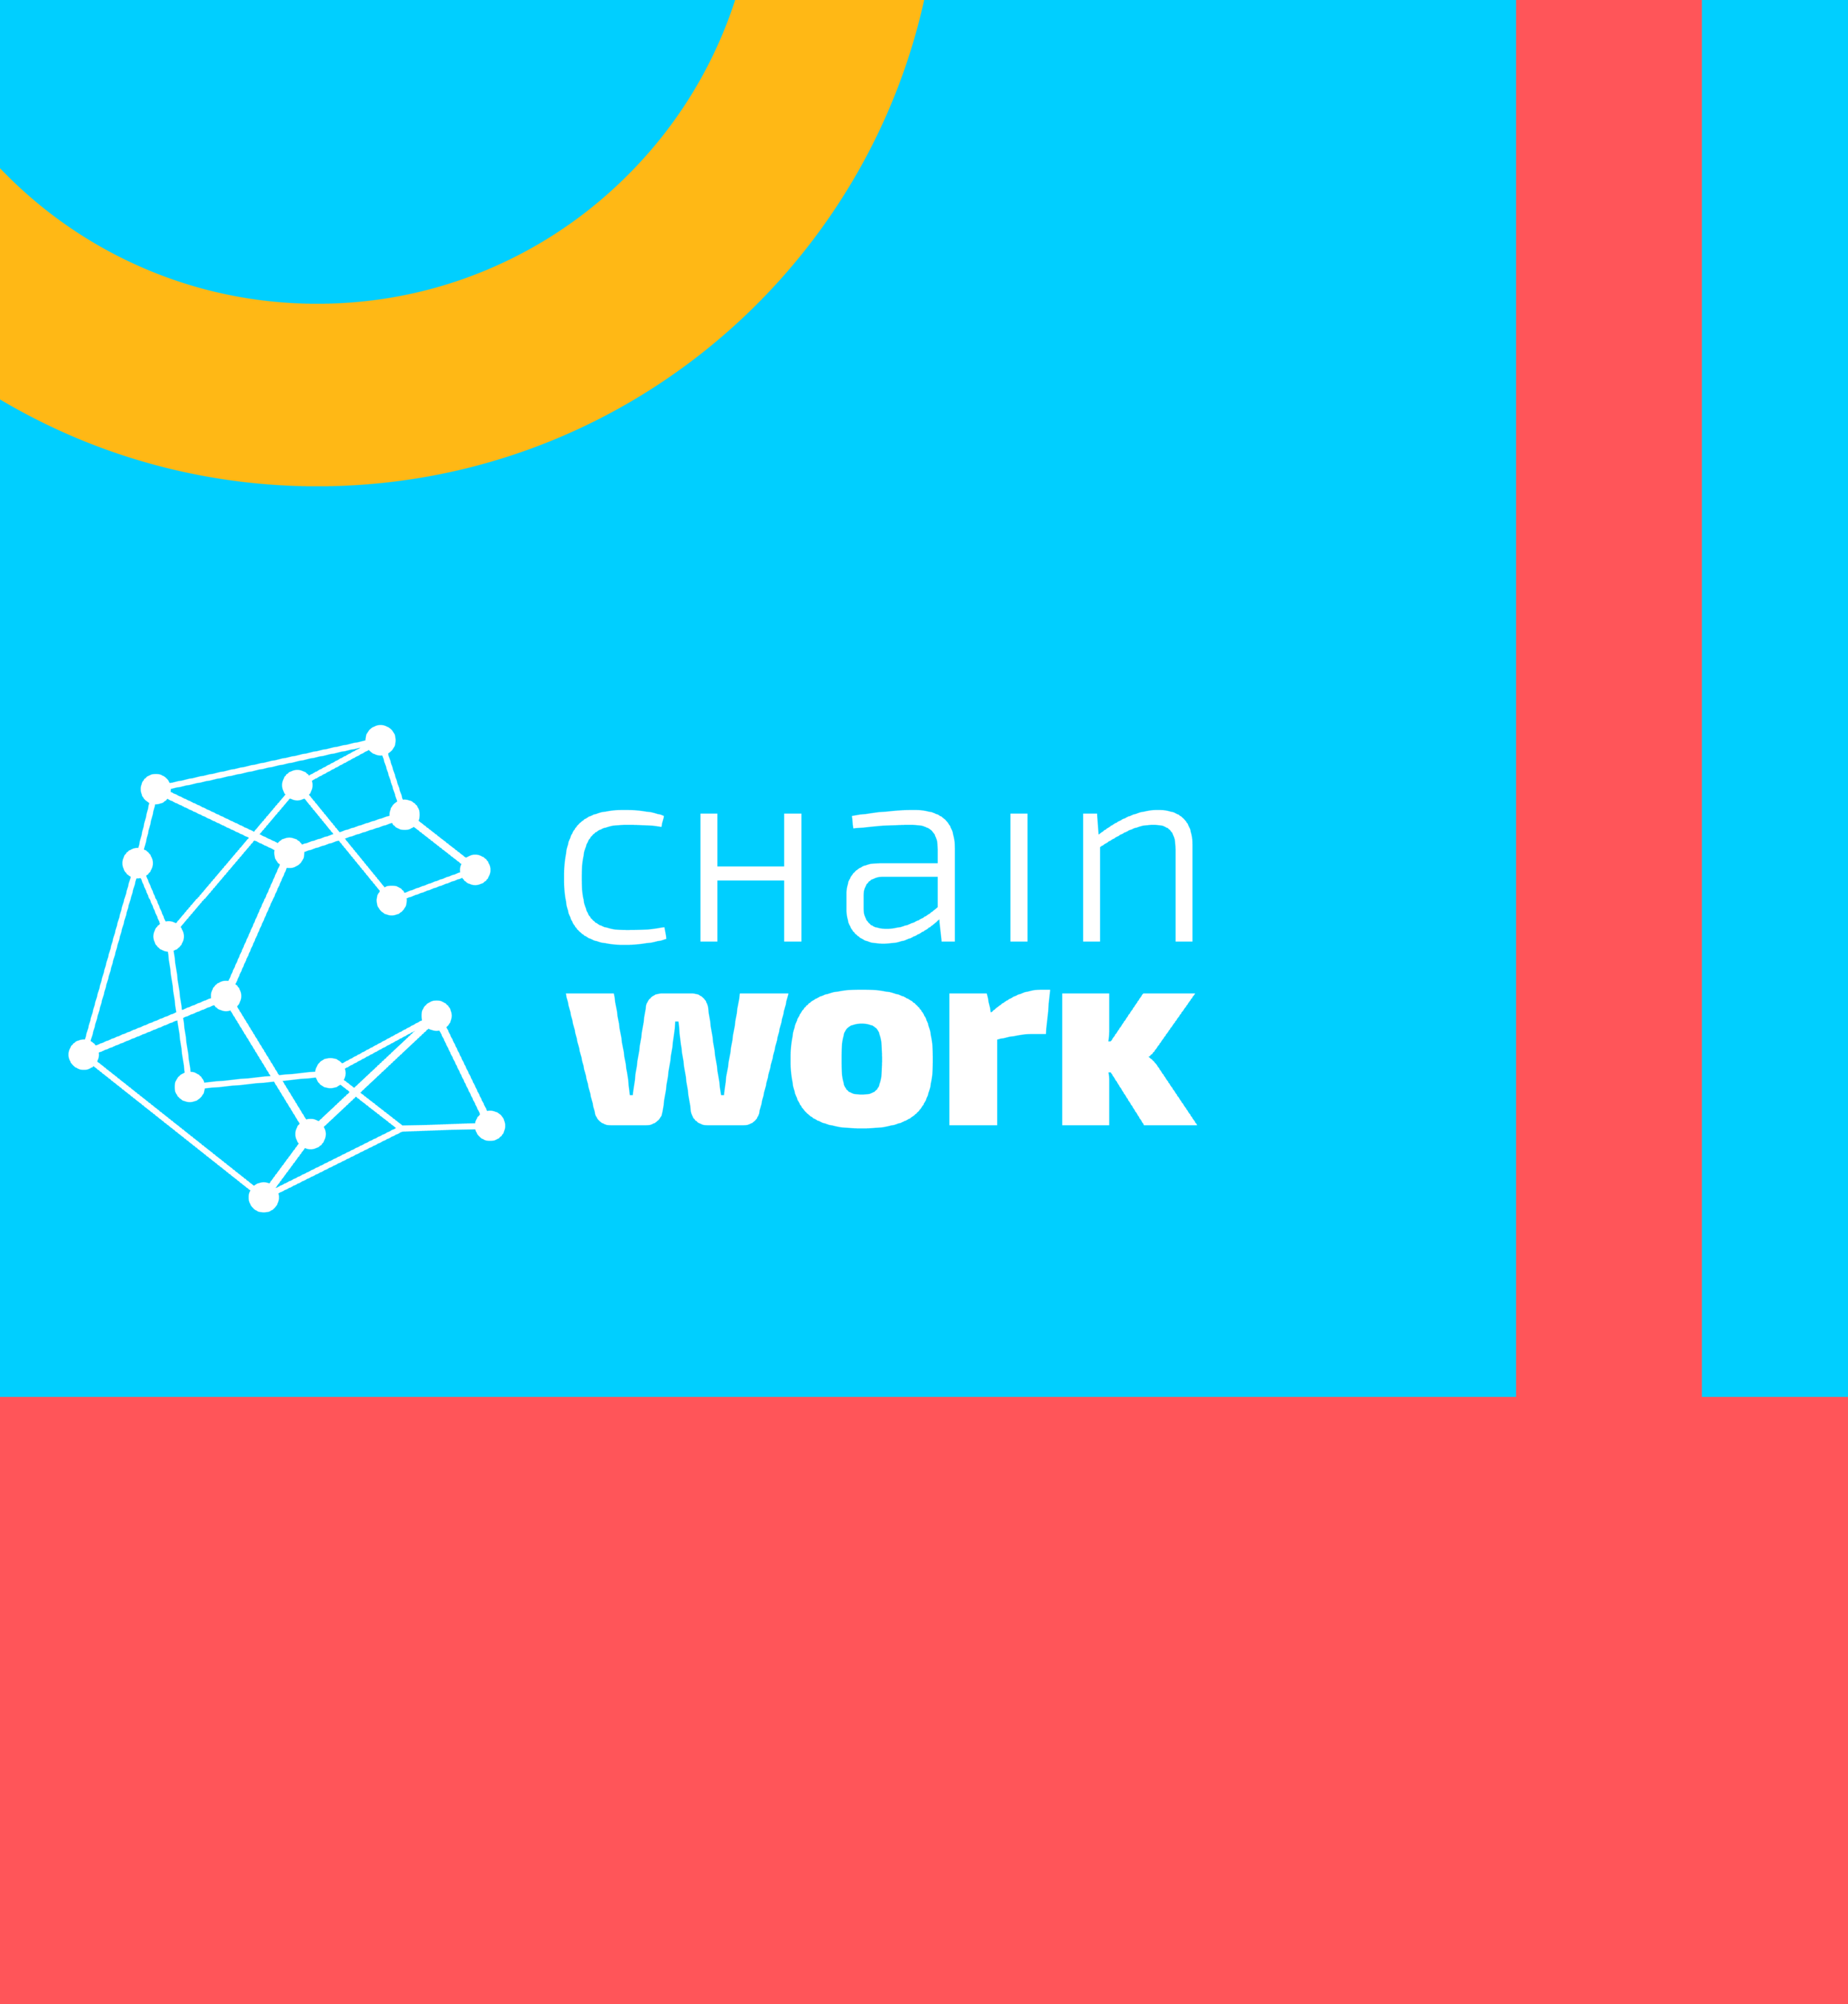 Our Friends - We collaborate closely with organizations in the Swiss blockchain ecosystem to provide the best access for businesses and academia to the latest in blockchain technology and models.